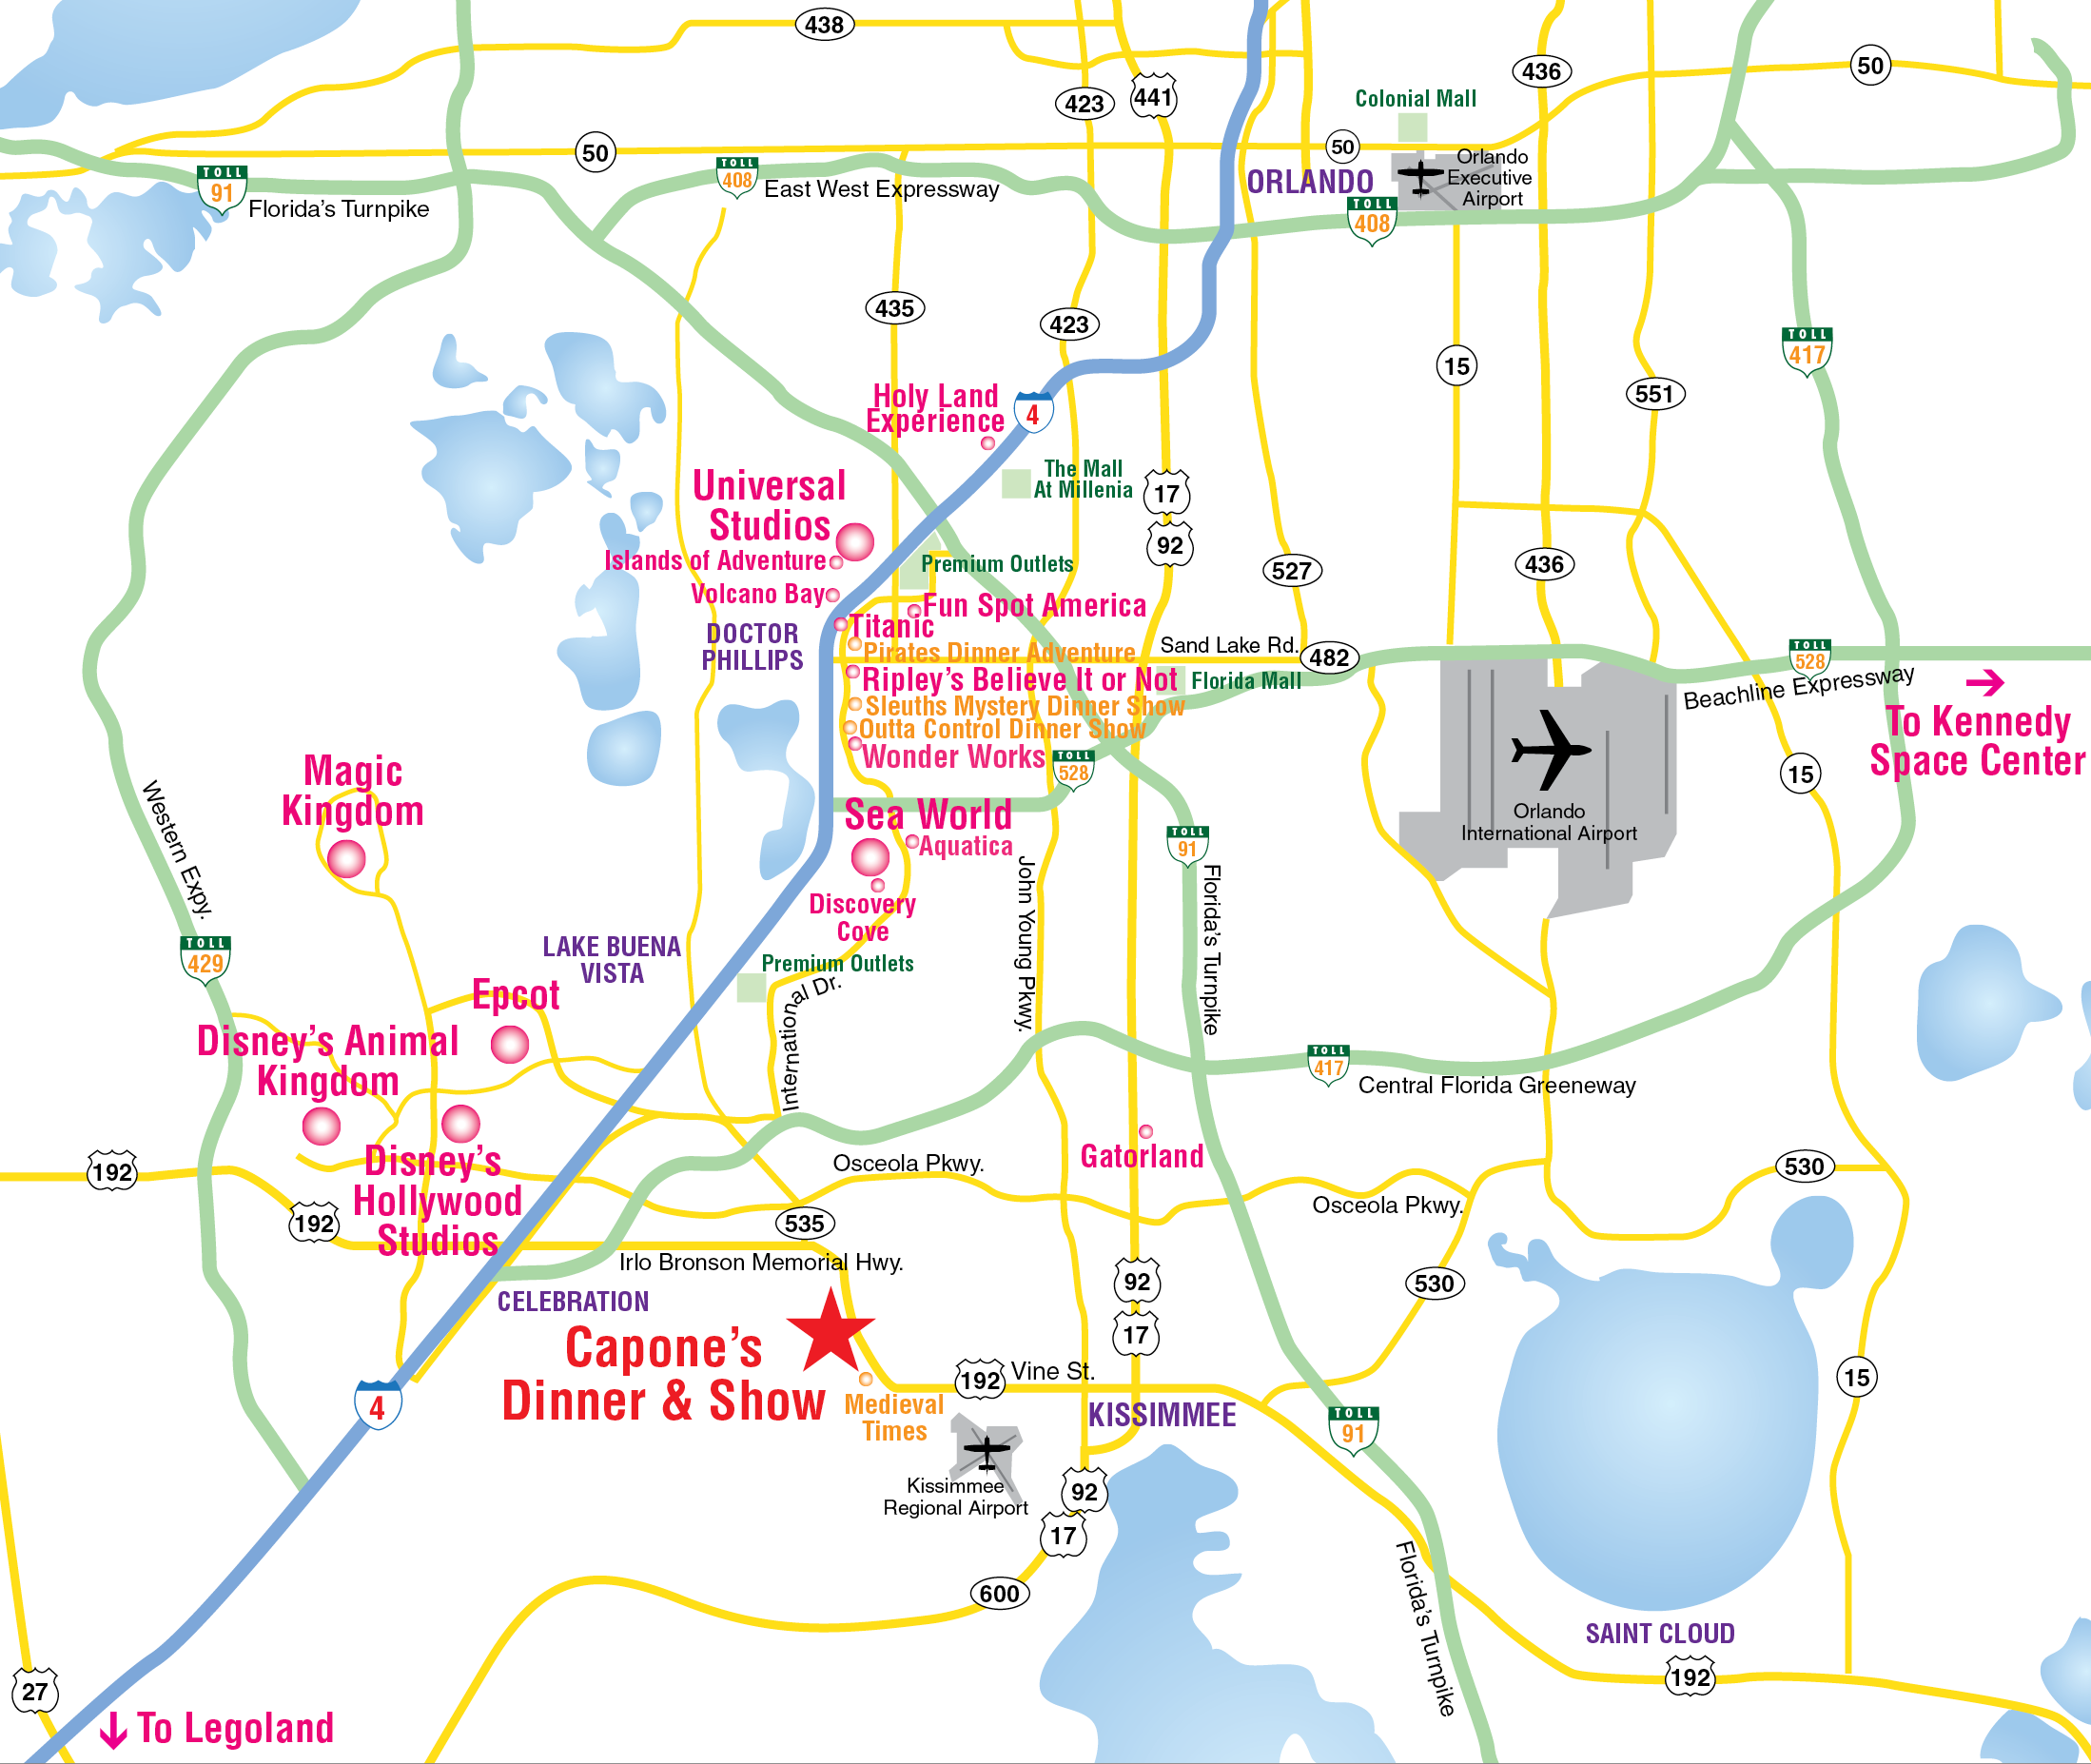 Map Of Orlando Area Attractions Map : Orlando Area Theme Park Map : alcapones.com